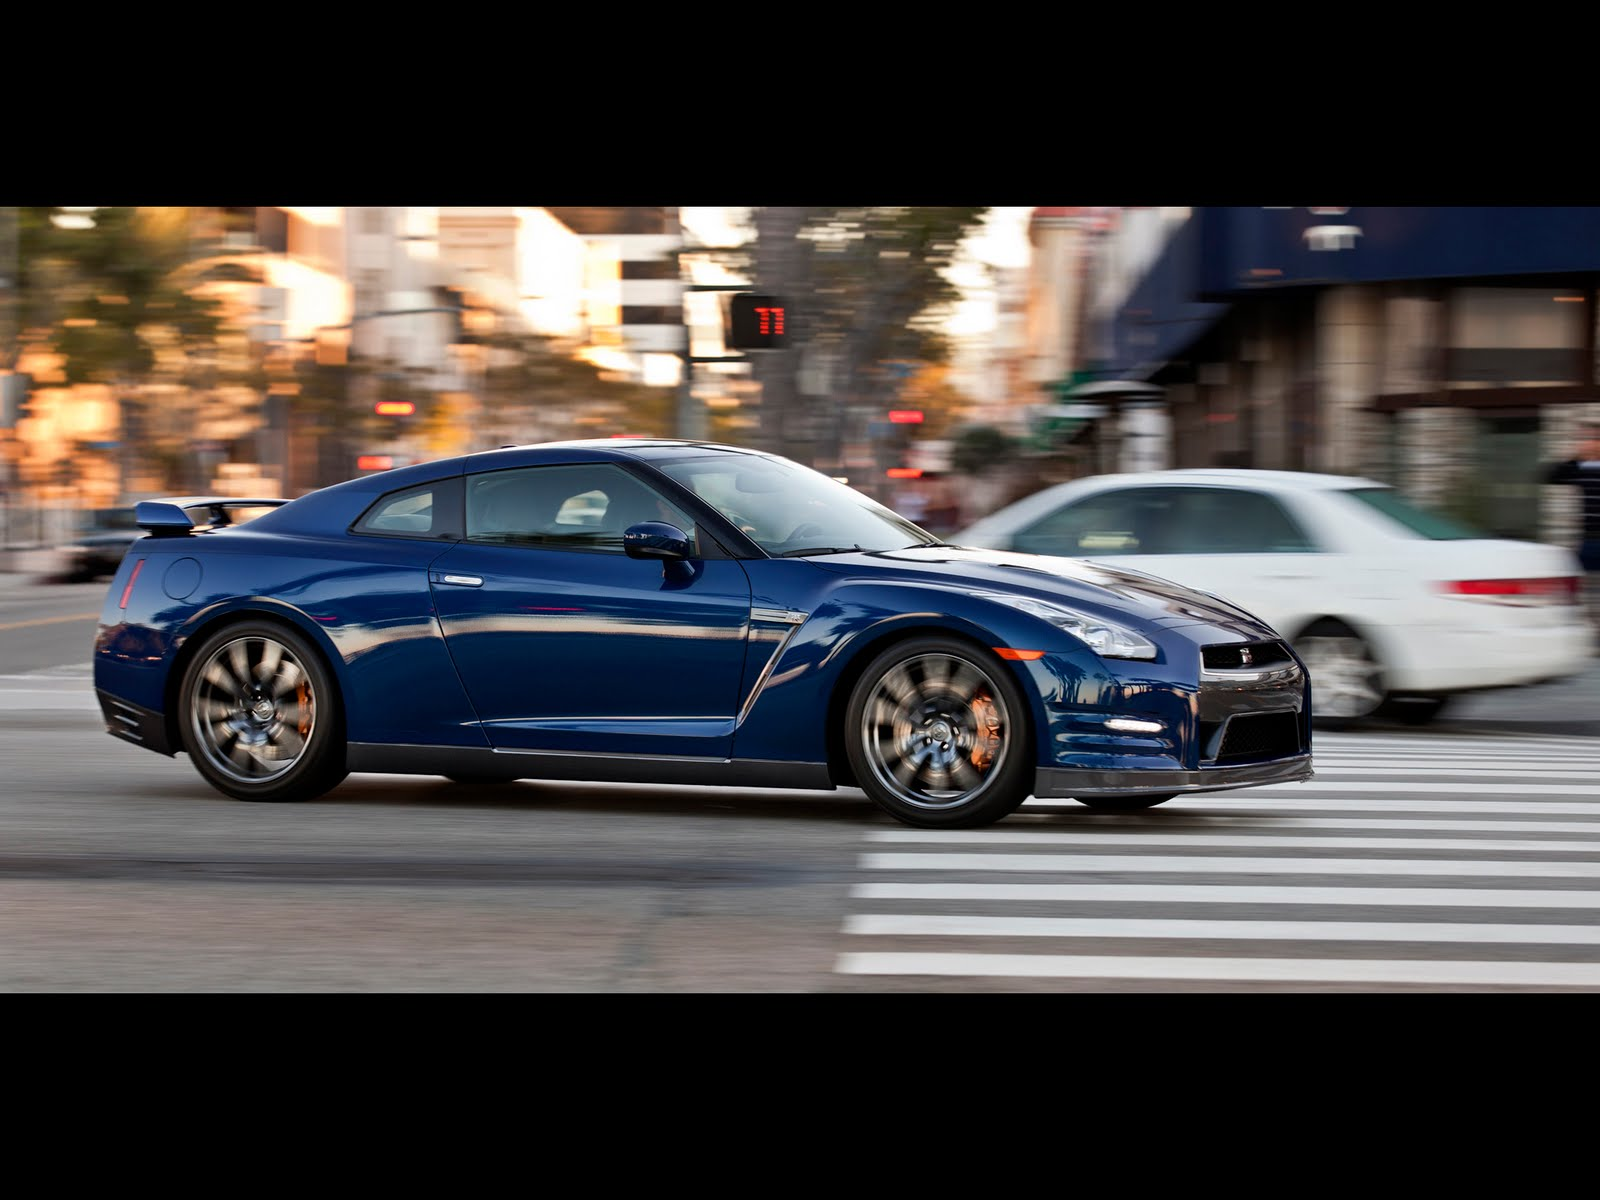 HV Supercars 2012 Nissan GT R Specs prices and video